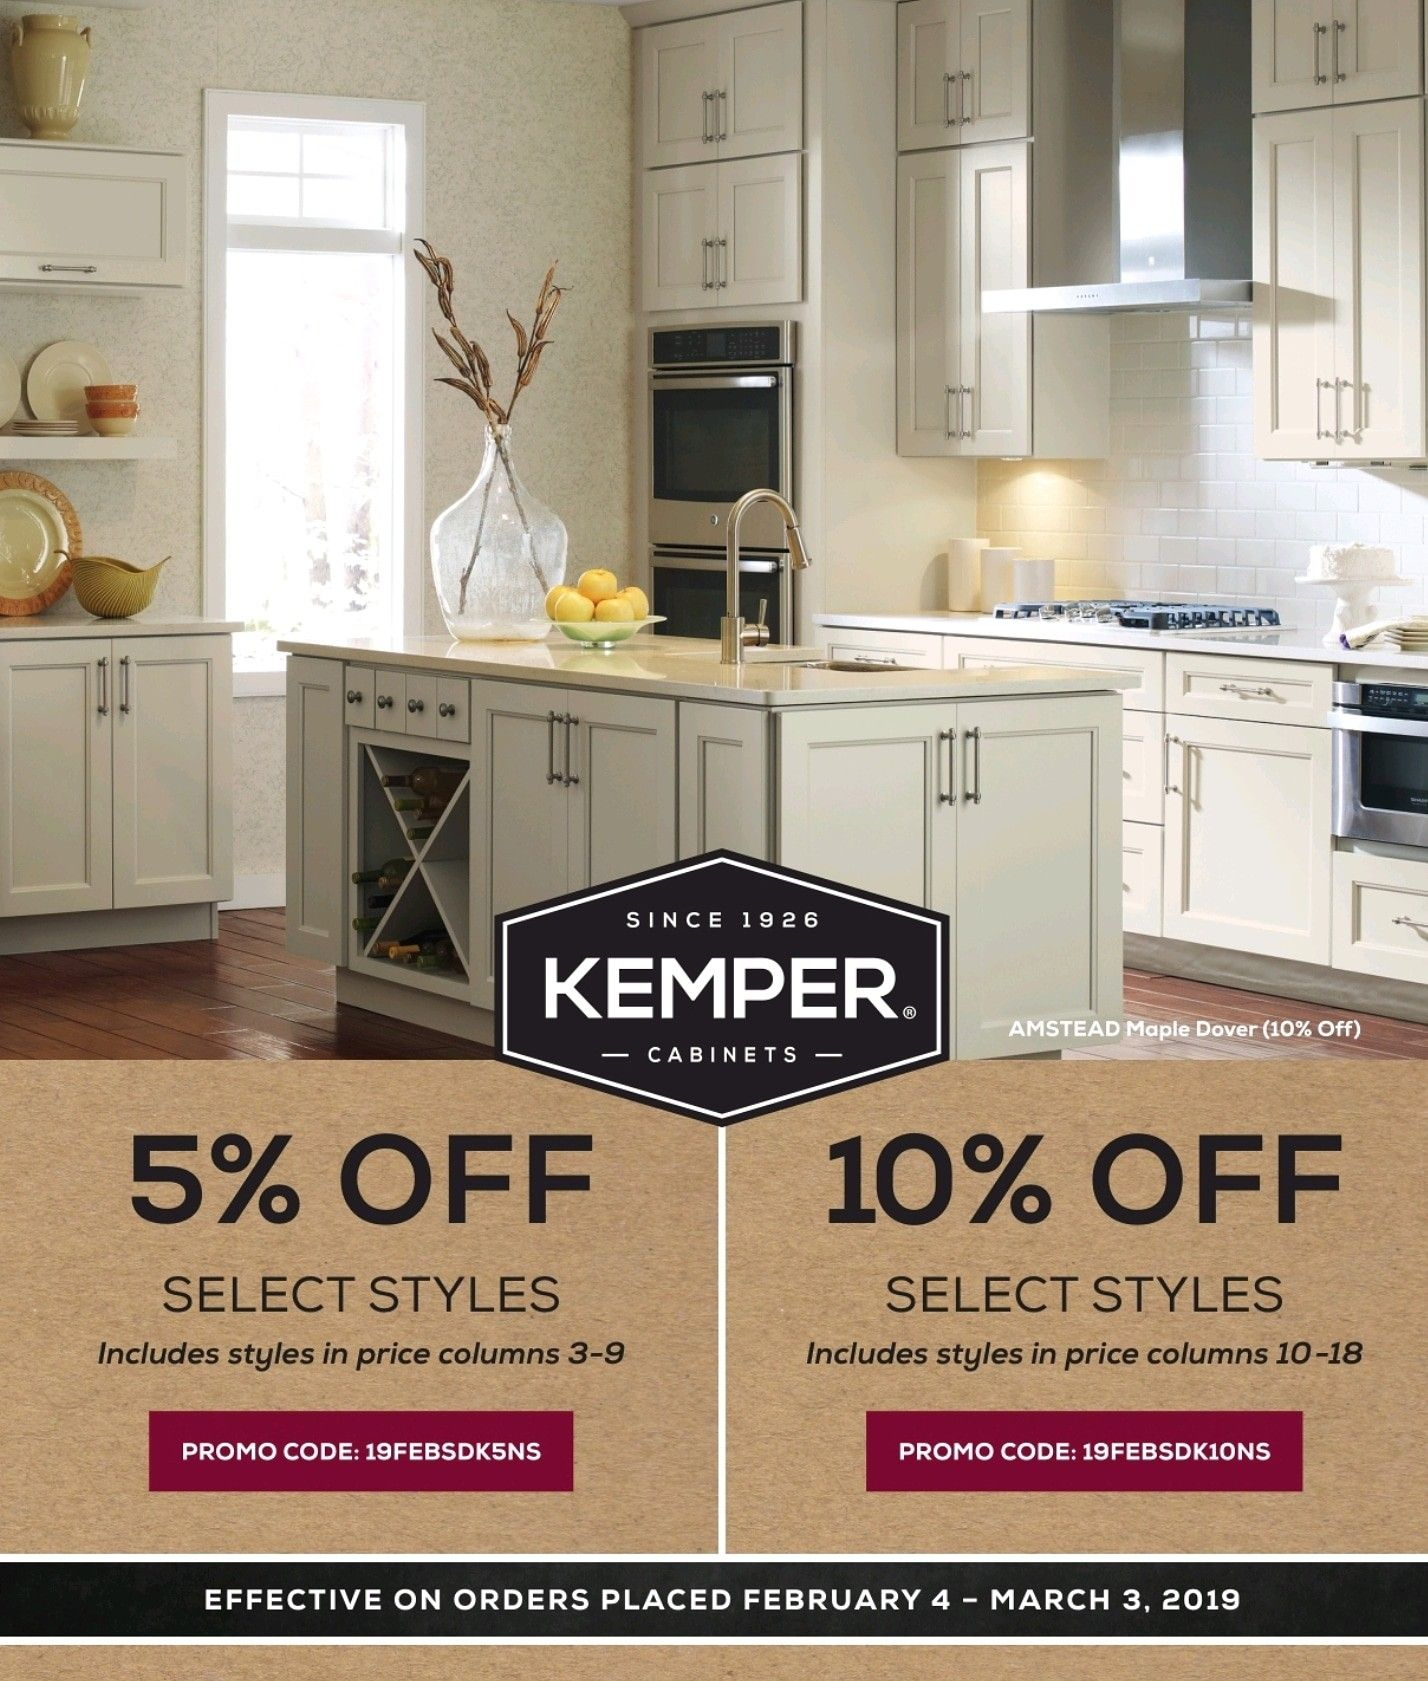 Kemper Cabinets Winter Promo Until March 3 2019 Save Up To 10 Off Select Styles Contact One Of Our Knoxvill Kitchen Sale Kitchen And Bath Showroom Kitchen